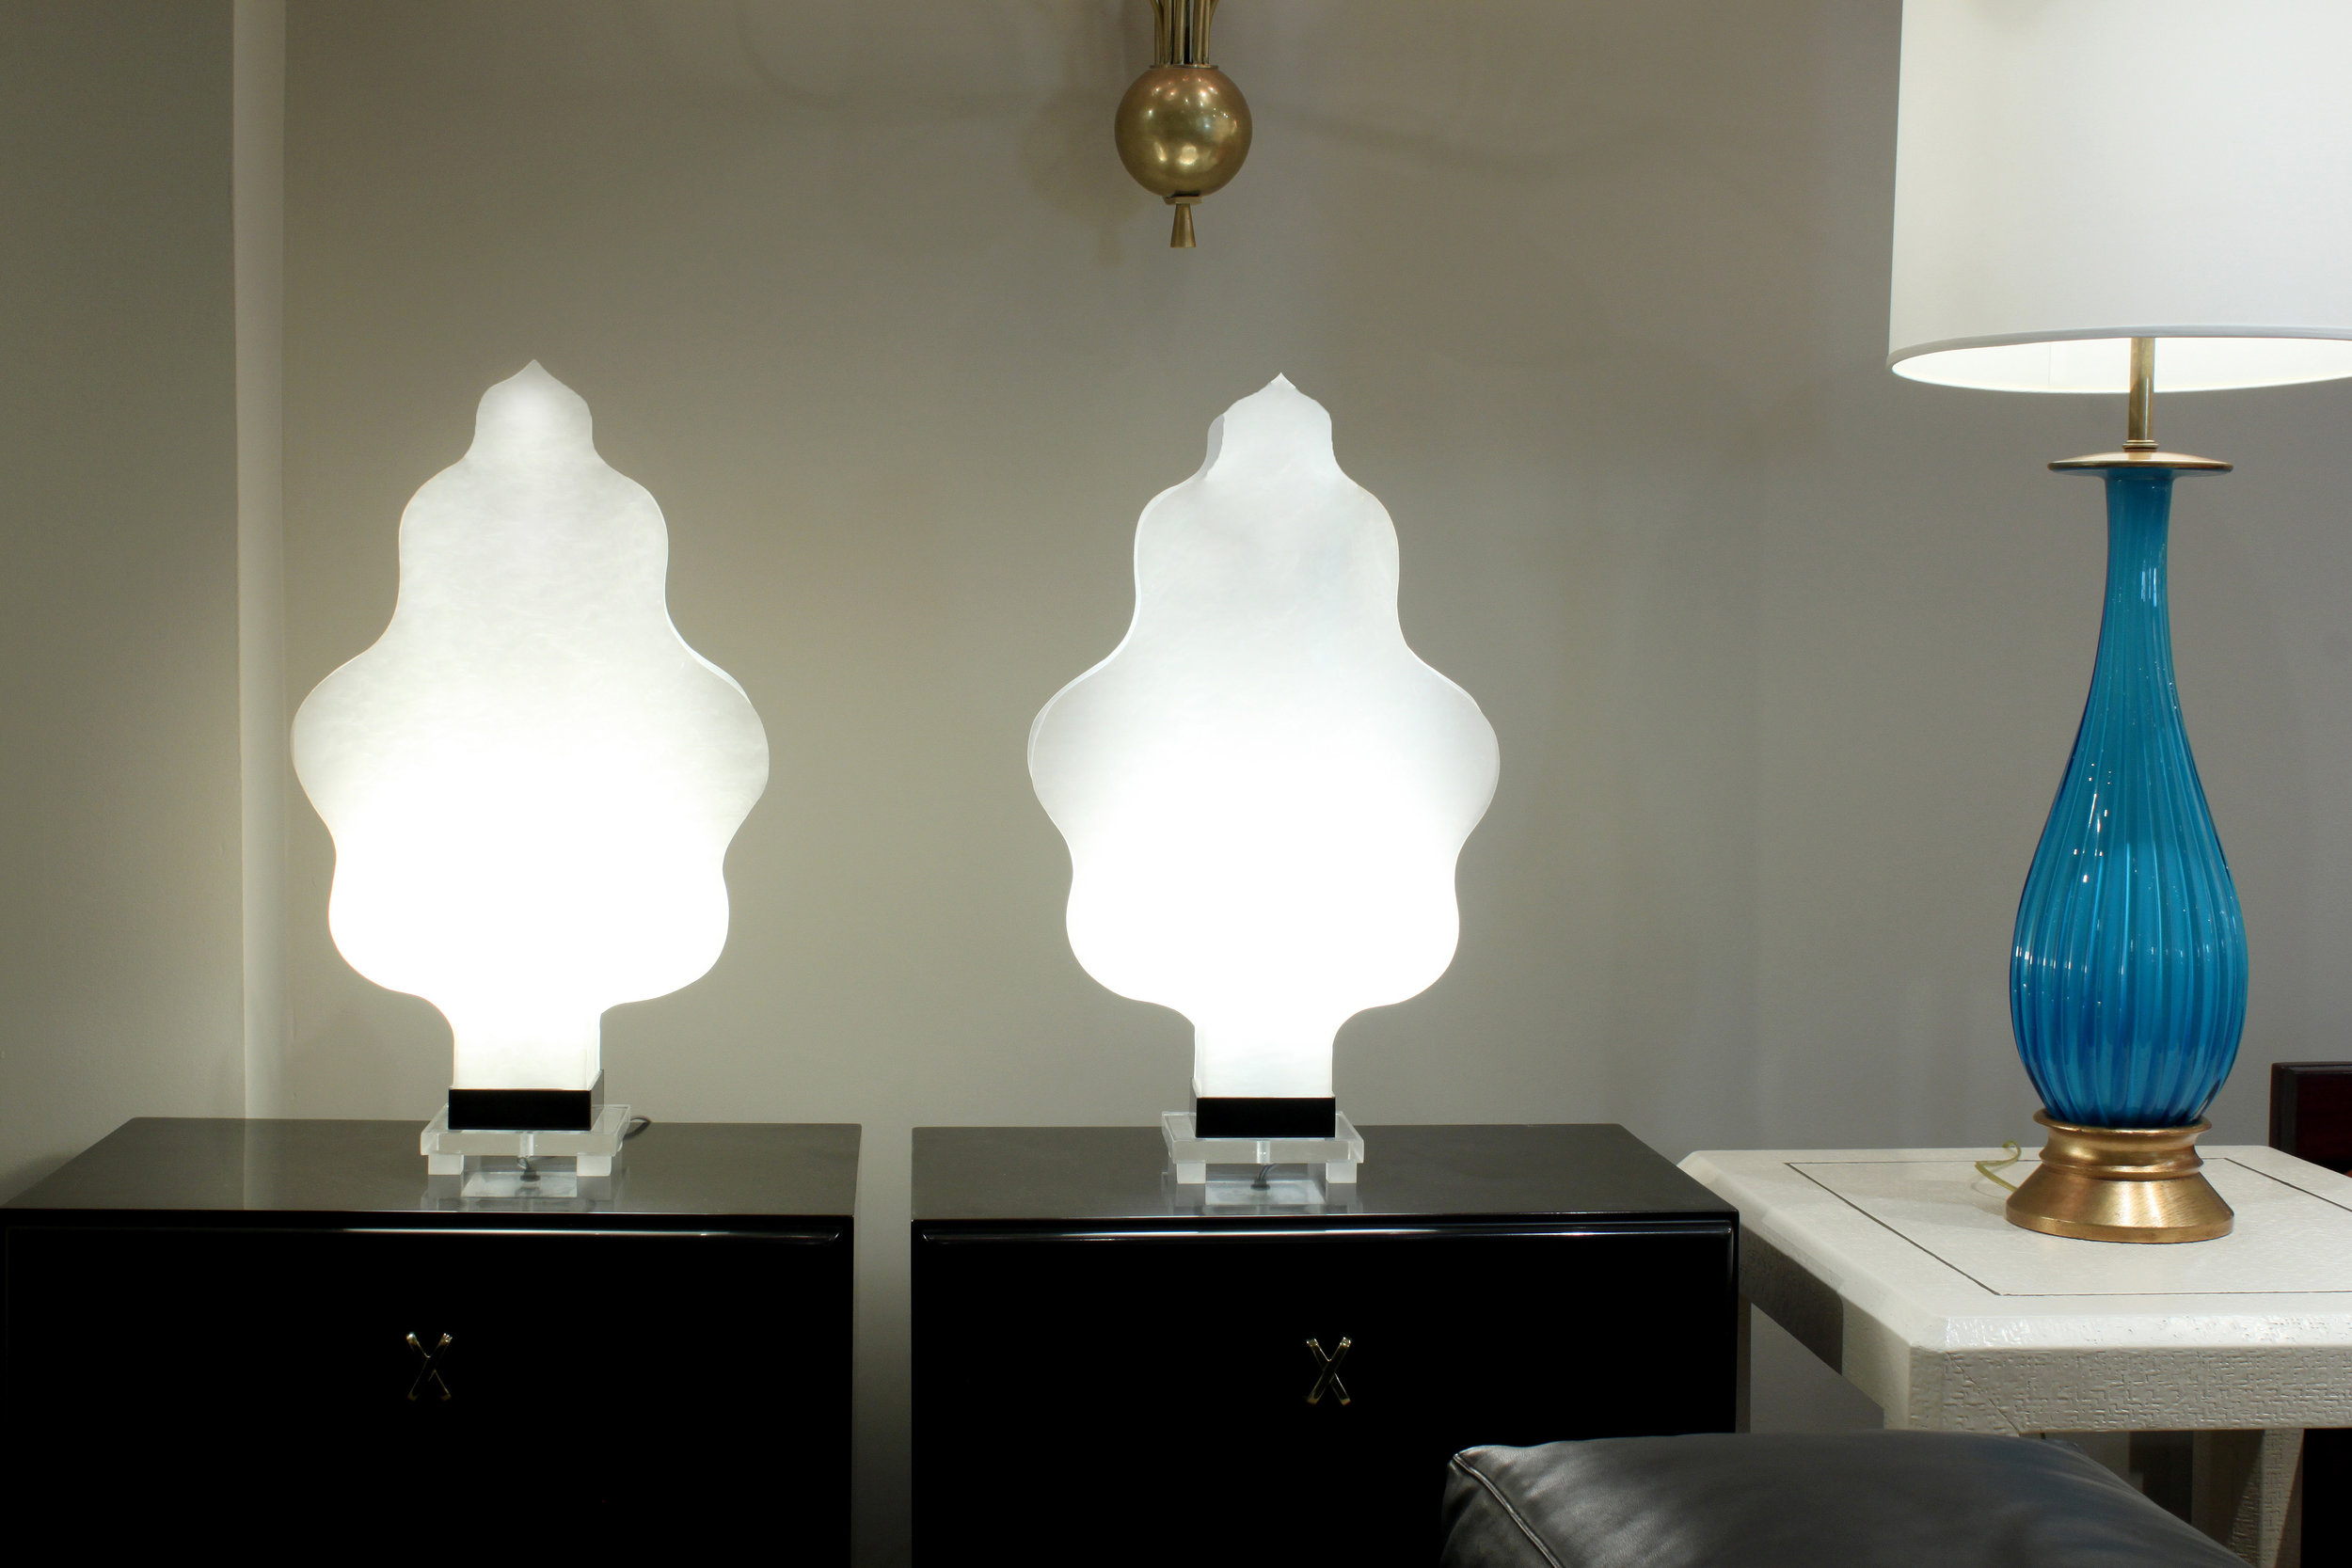 70's 45 lucite pearescent flames tablelamps338 atmosphere hires.jpg